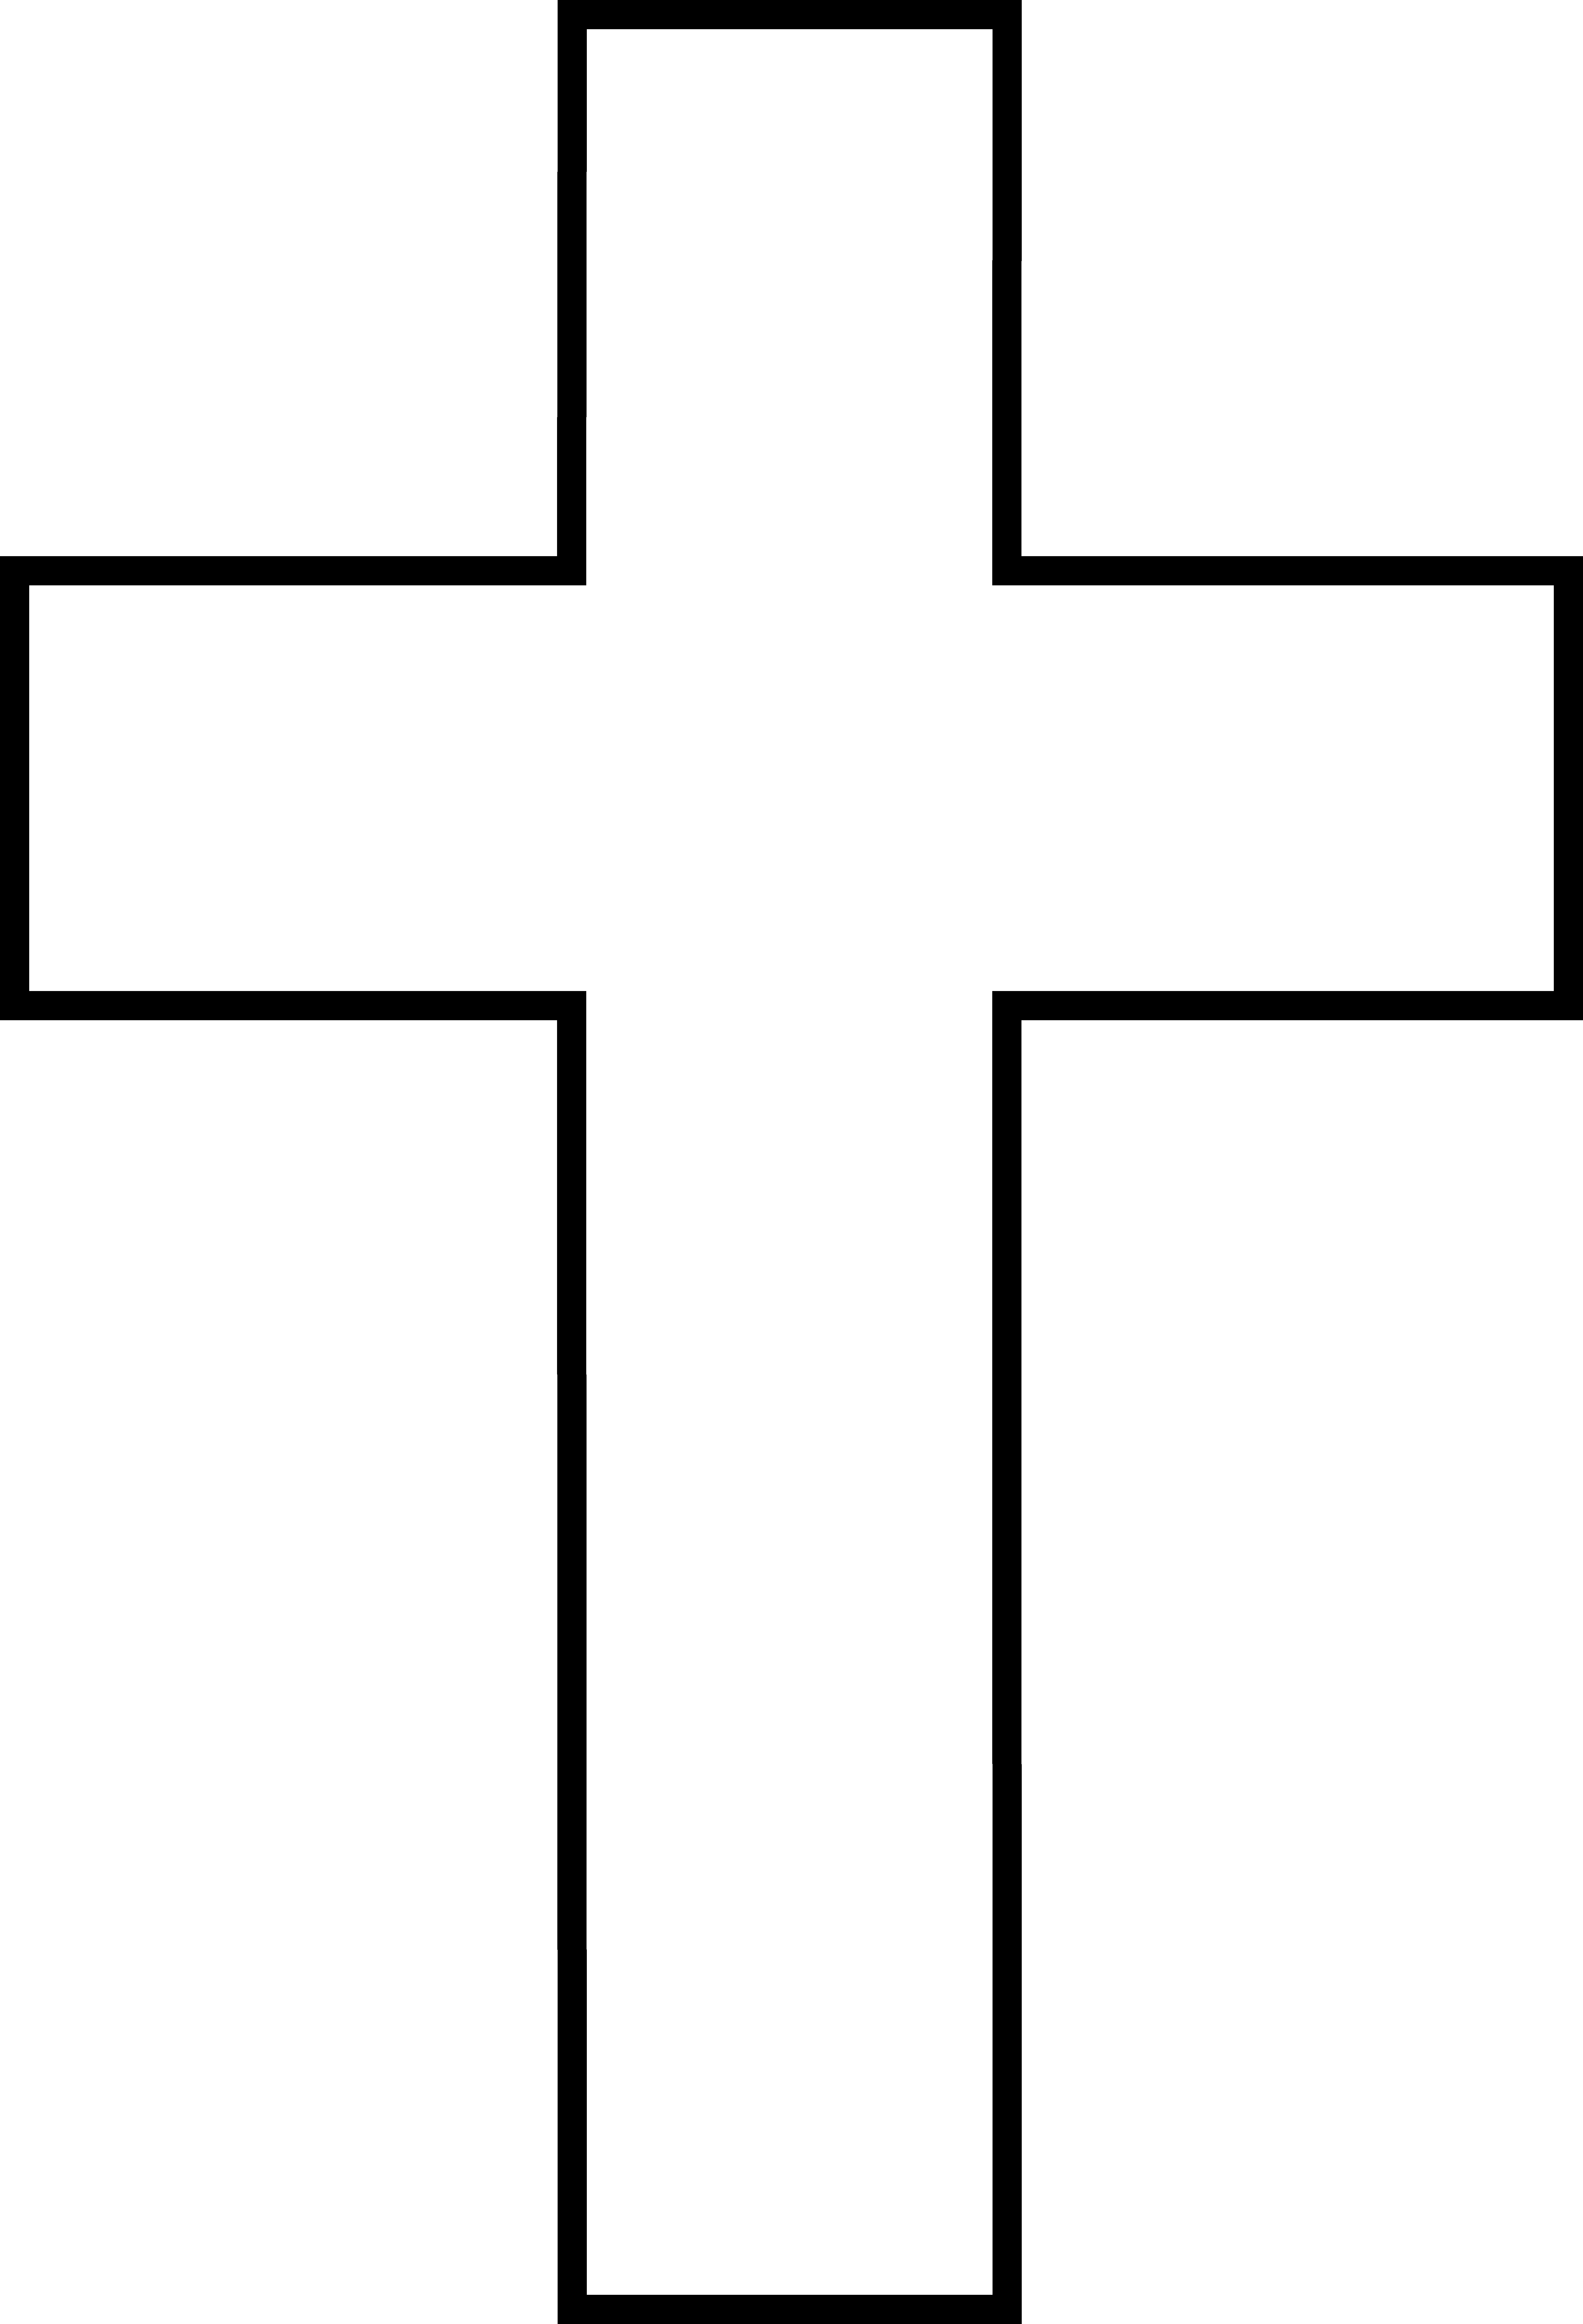 Cross and faith black and white clipart clipart black and white Free Cross Clipart Black And White | Coloring | Pinterest | Buttons ... clipart black and white